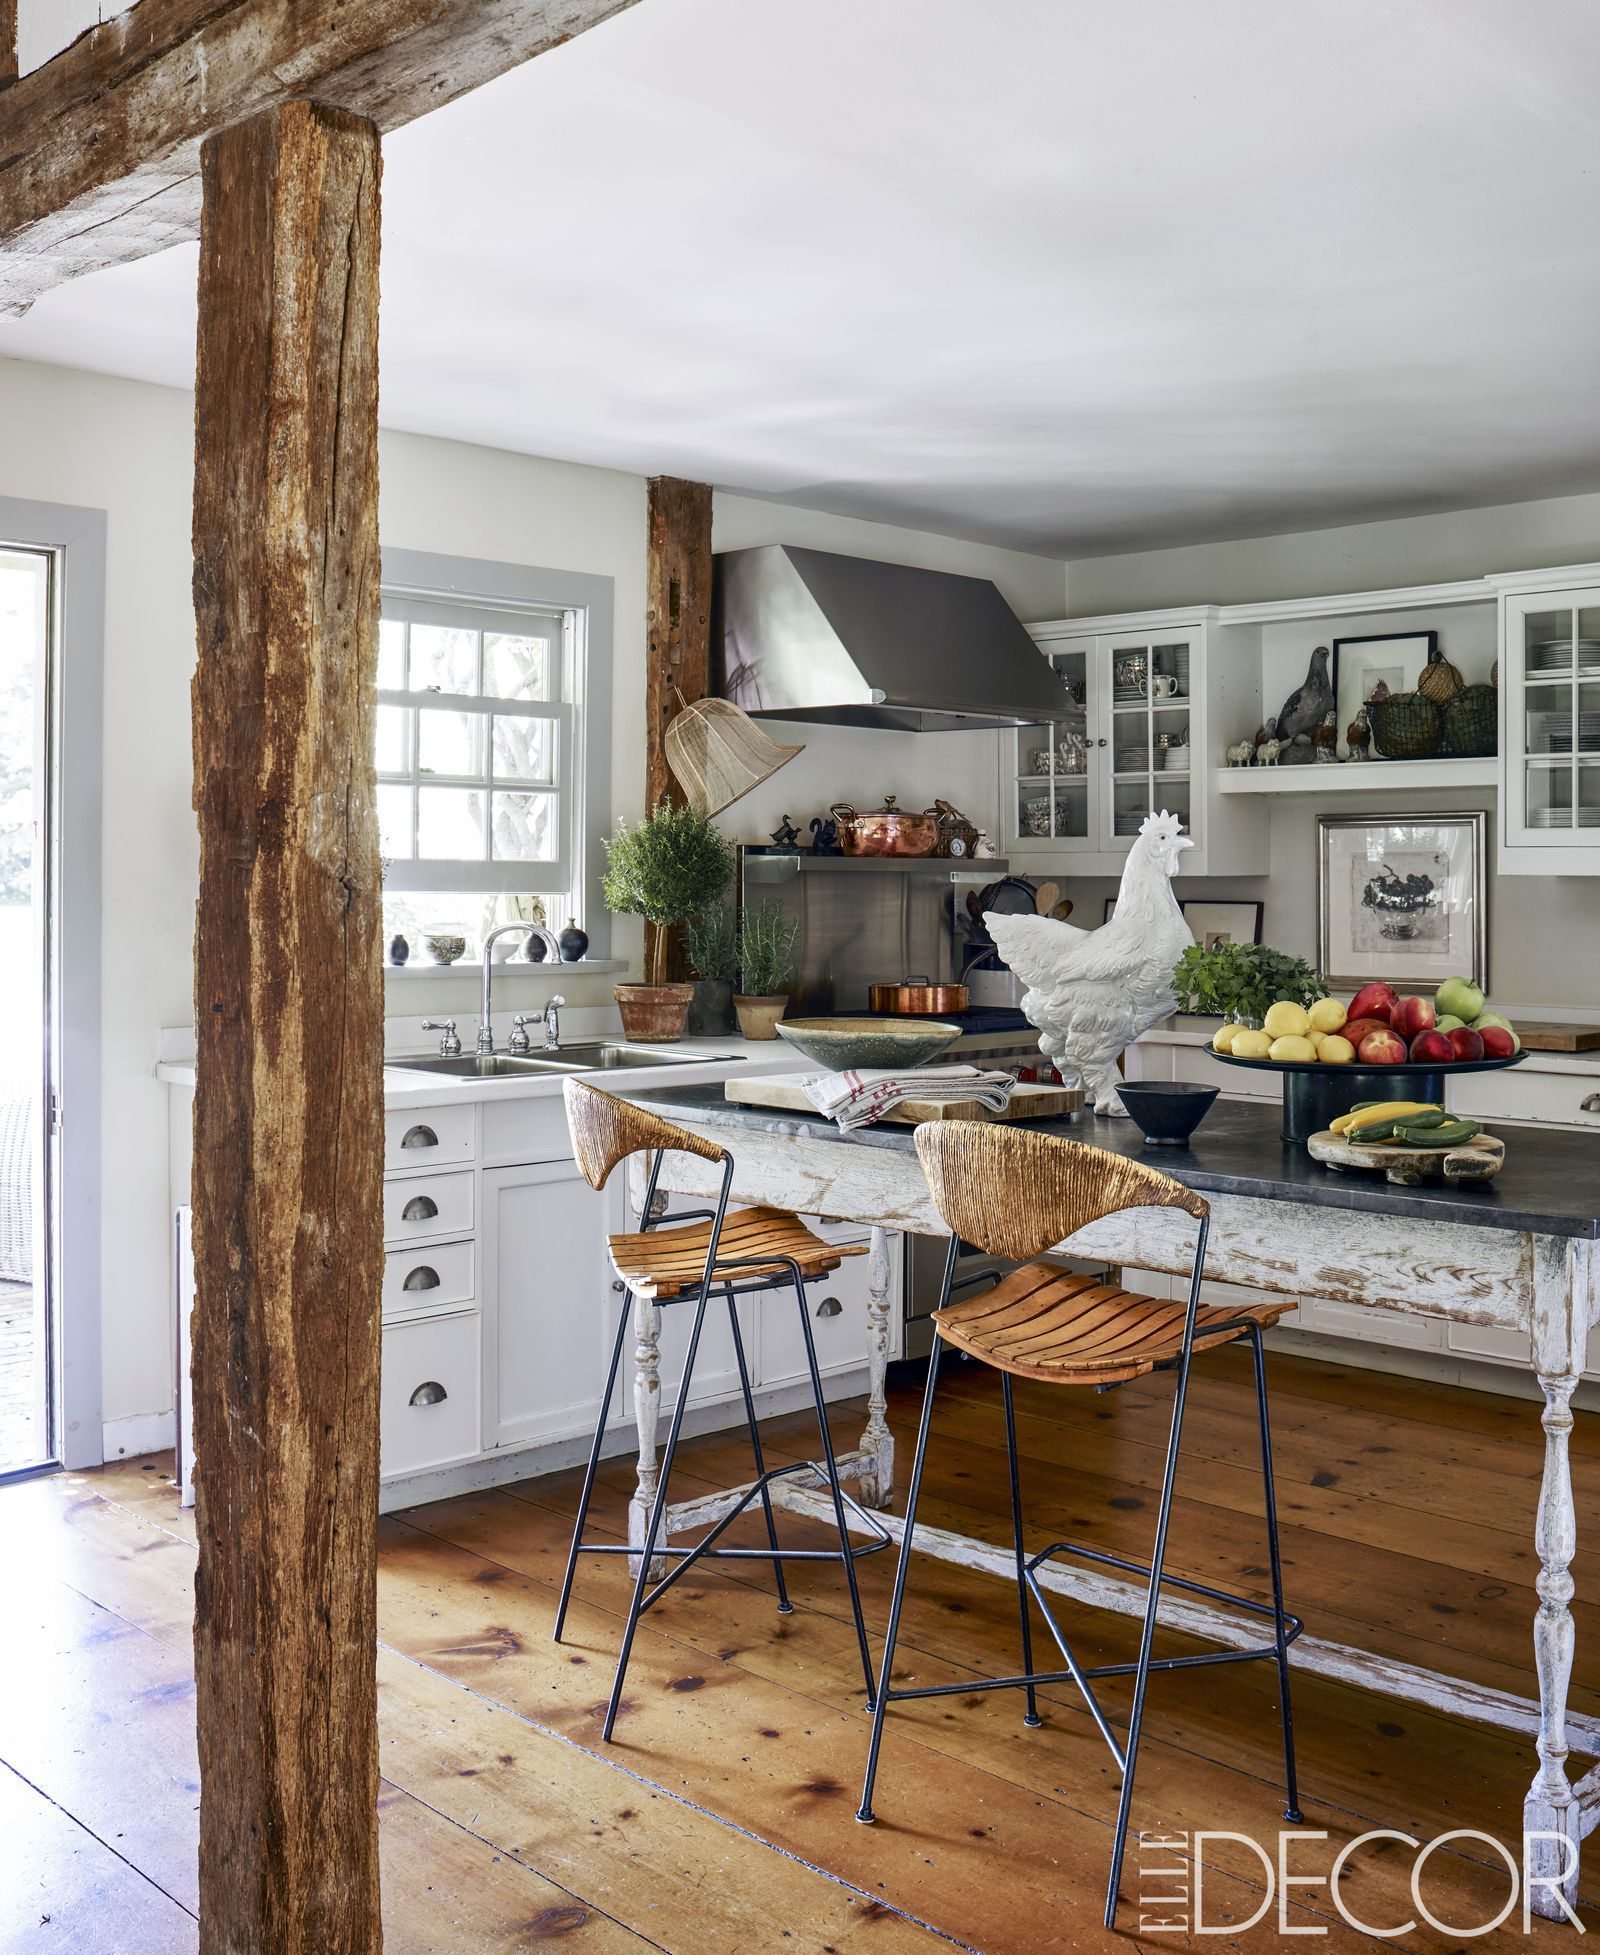 Charming Rustic Kitchen Ideas And Inspirations: 25 Kitchens That Make The Case For Rustic Style